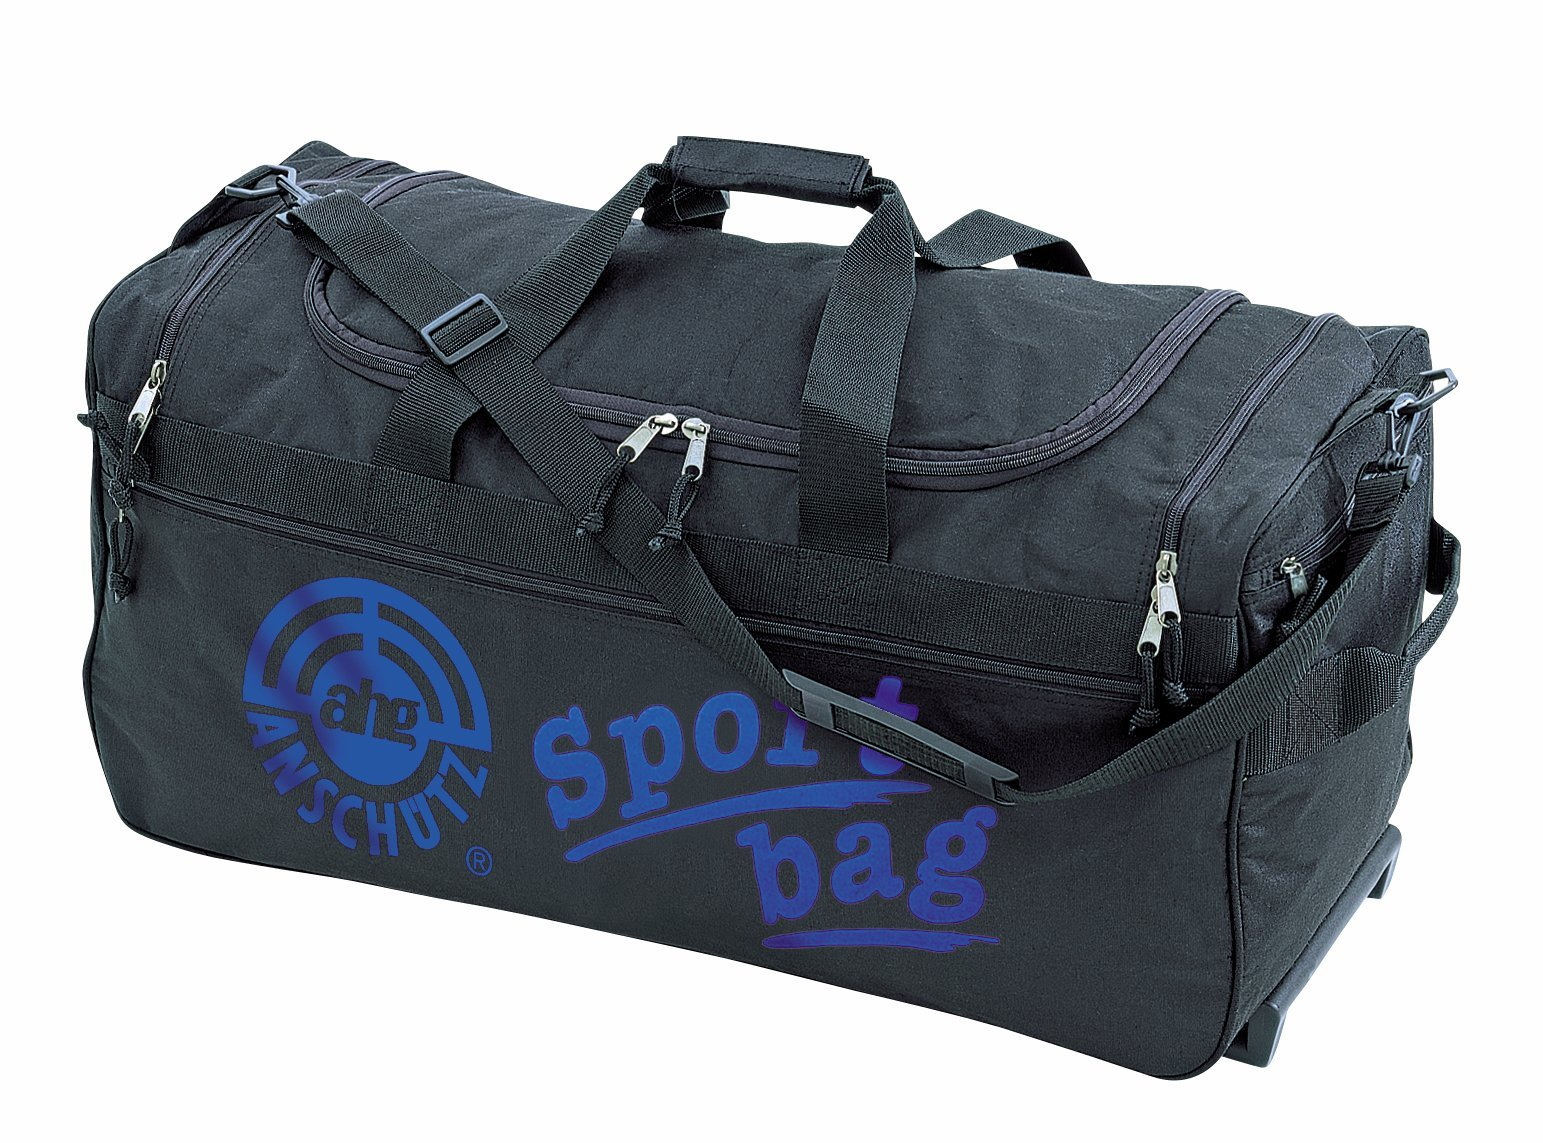 ahg-SHOOTING BAG with wheels